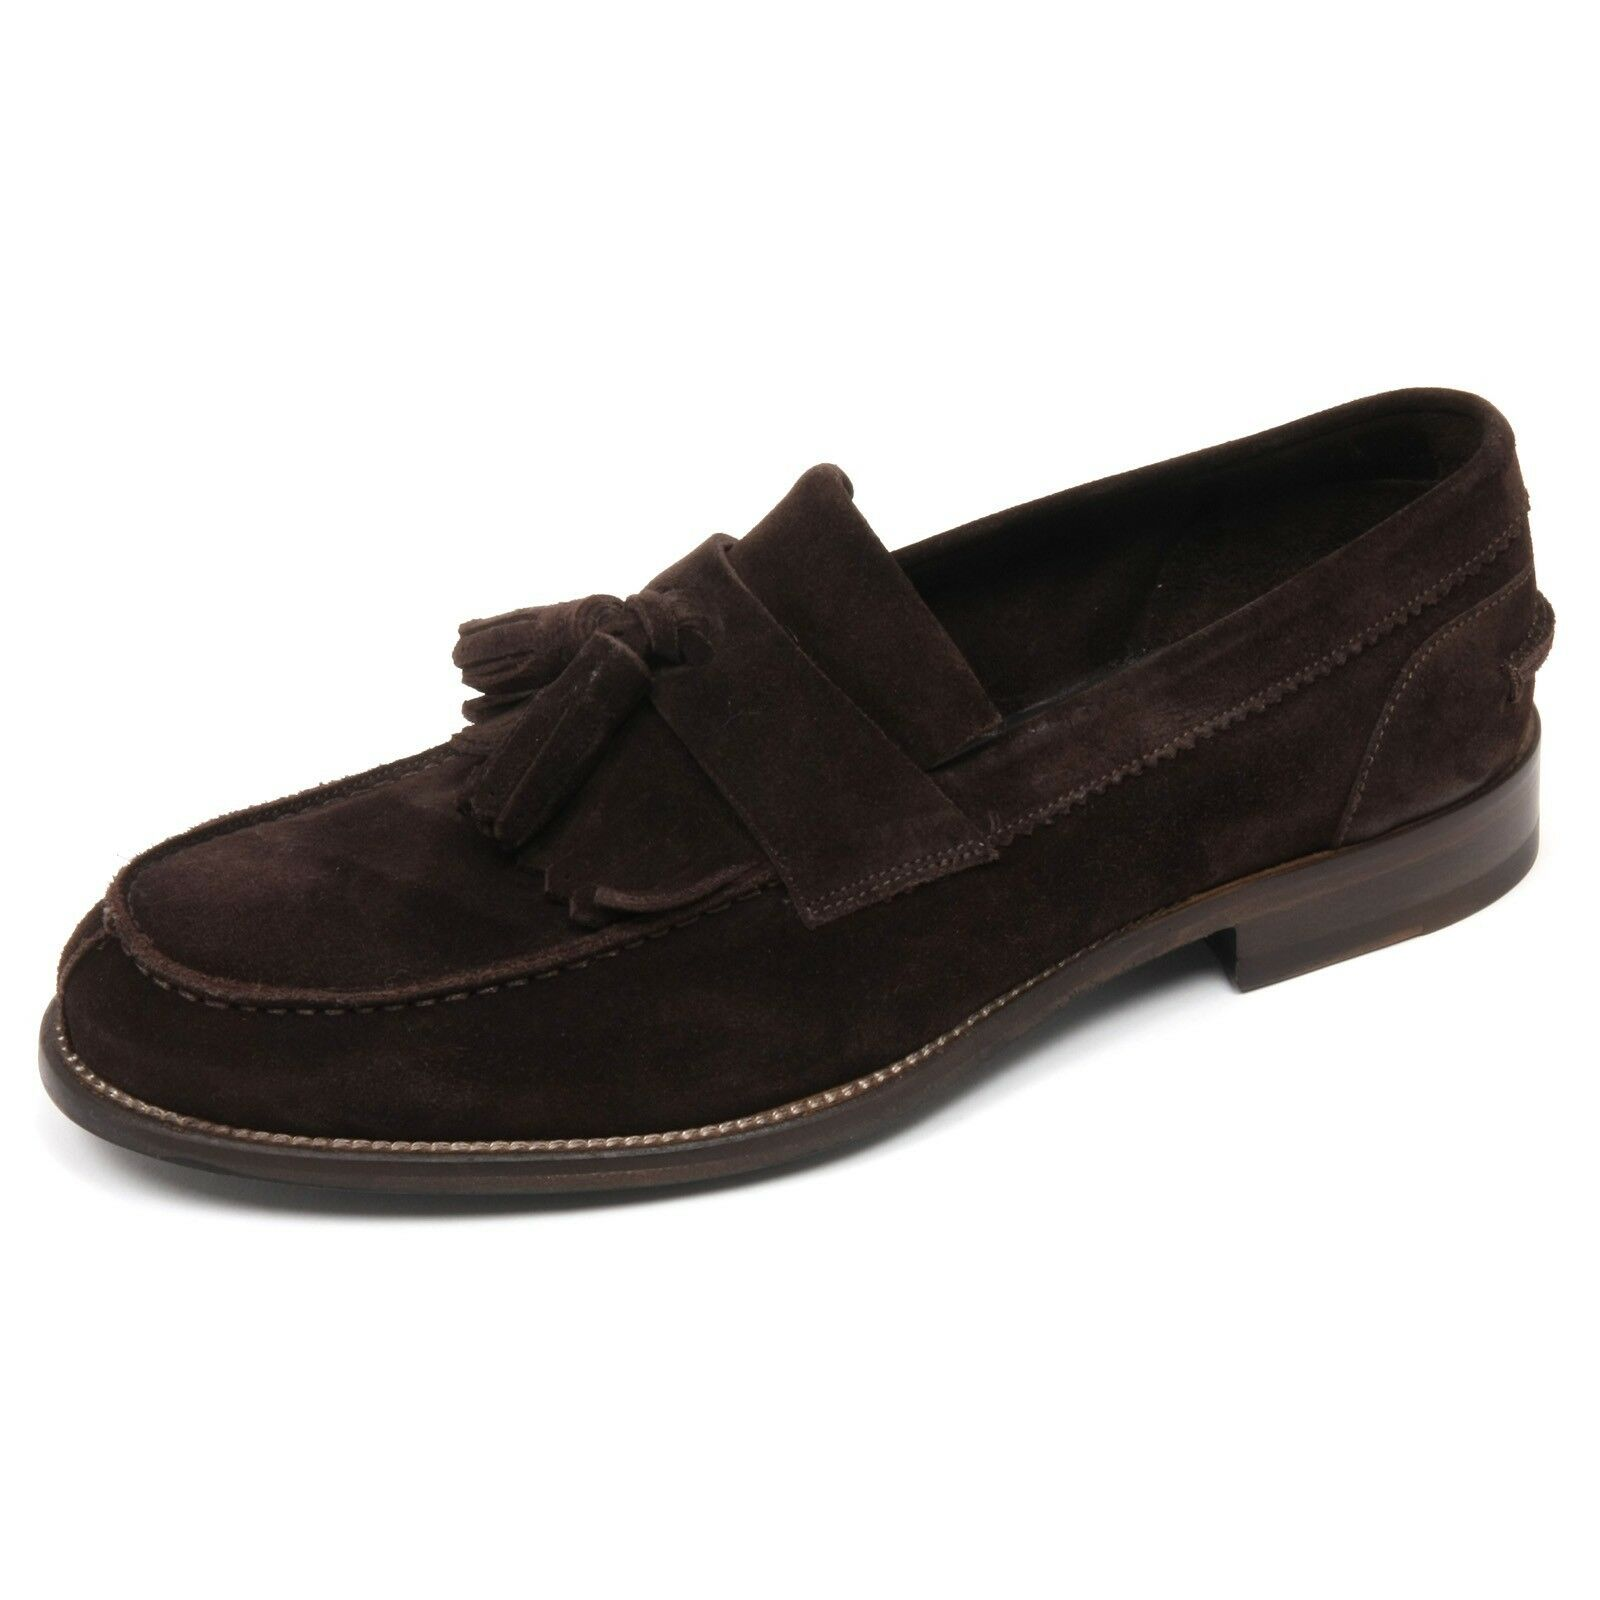 C7818 mocassino uomo CARACCIOLO 1971 scarpa marrone scuro loafer shoe man